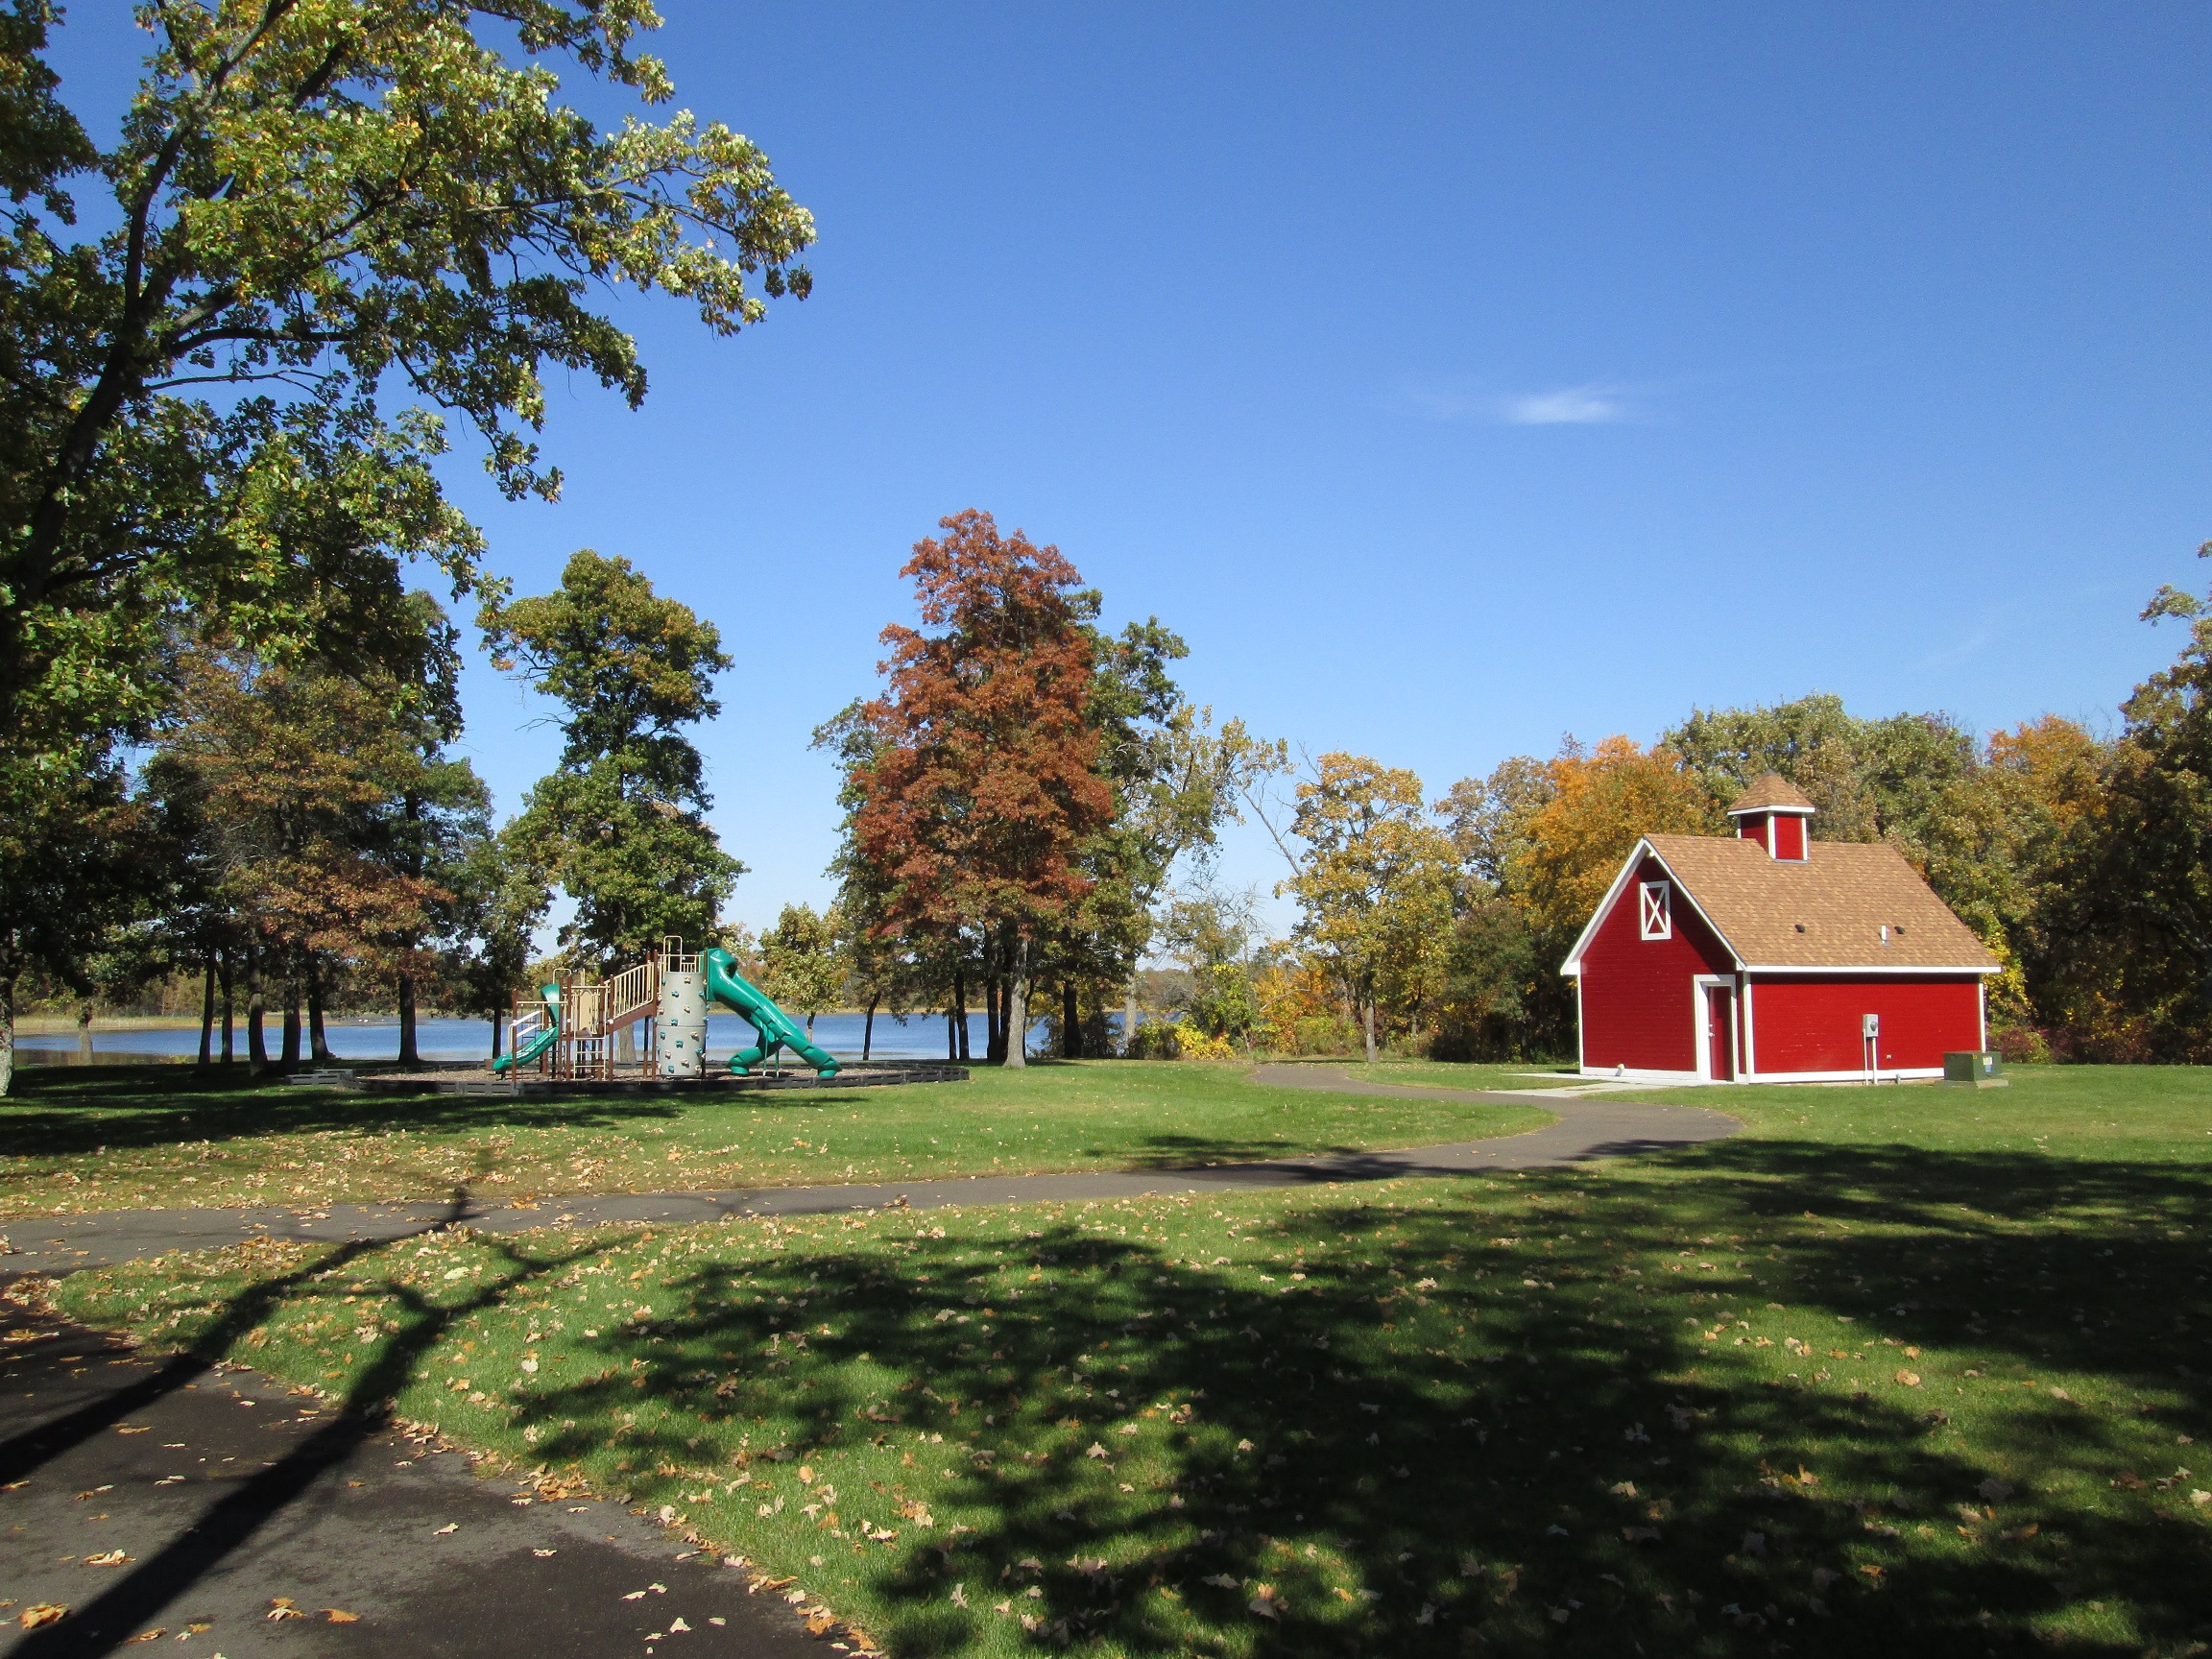 Park with a barn background